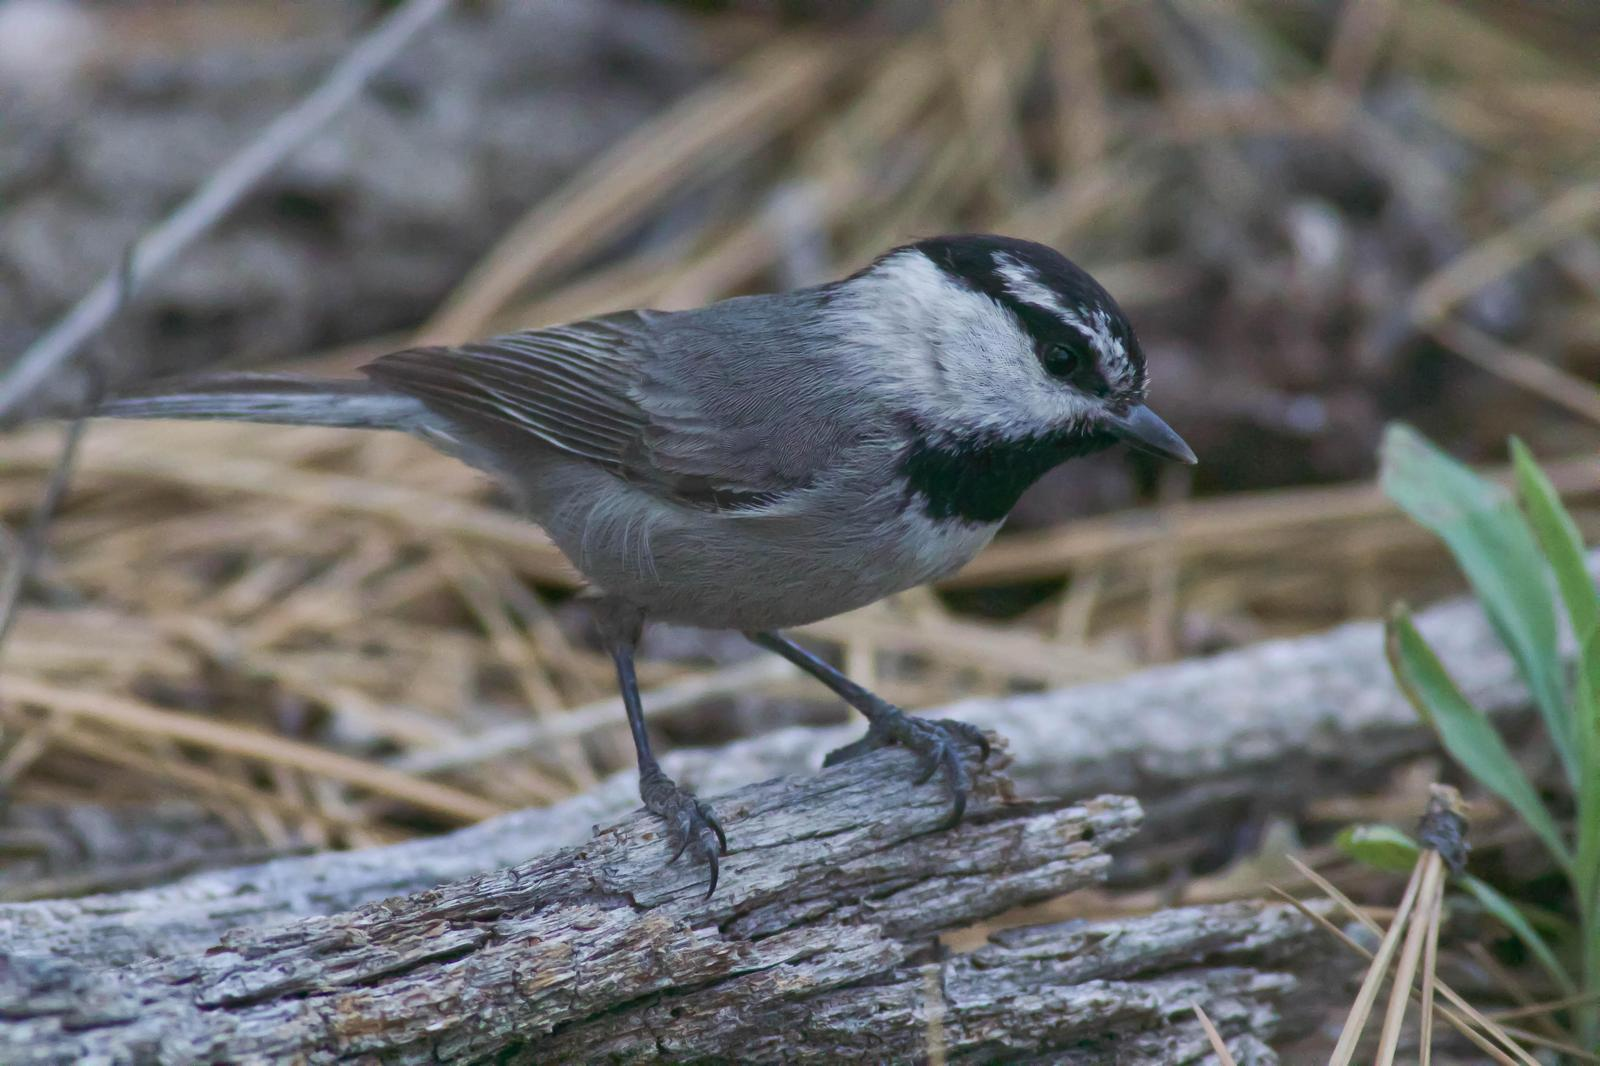 Mountain Chickadee Photo by Tom Ford-Hutchinson